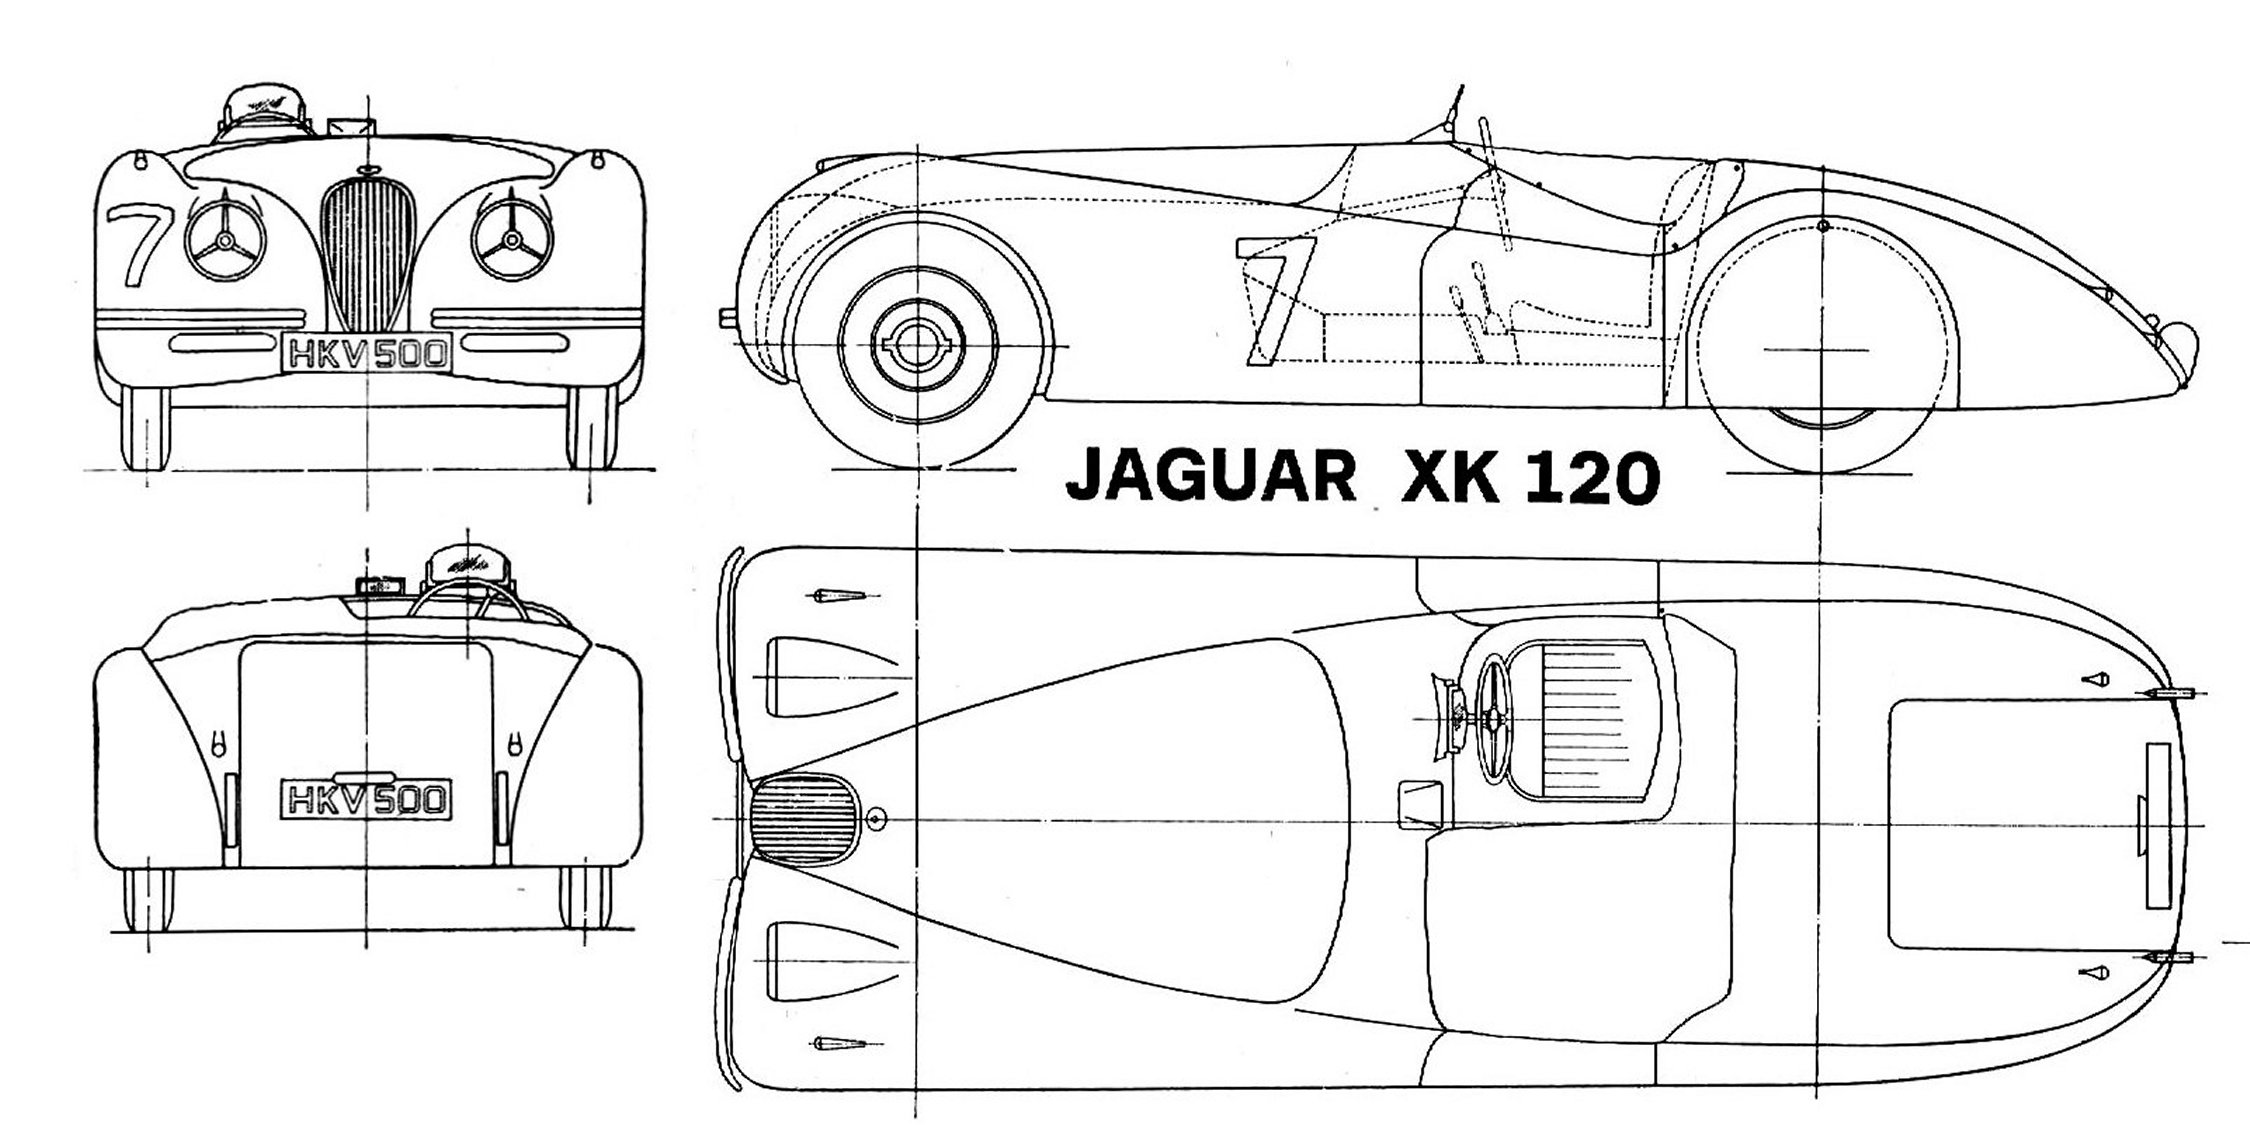 Jaguar Xk120 Blueprint